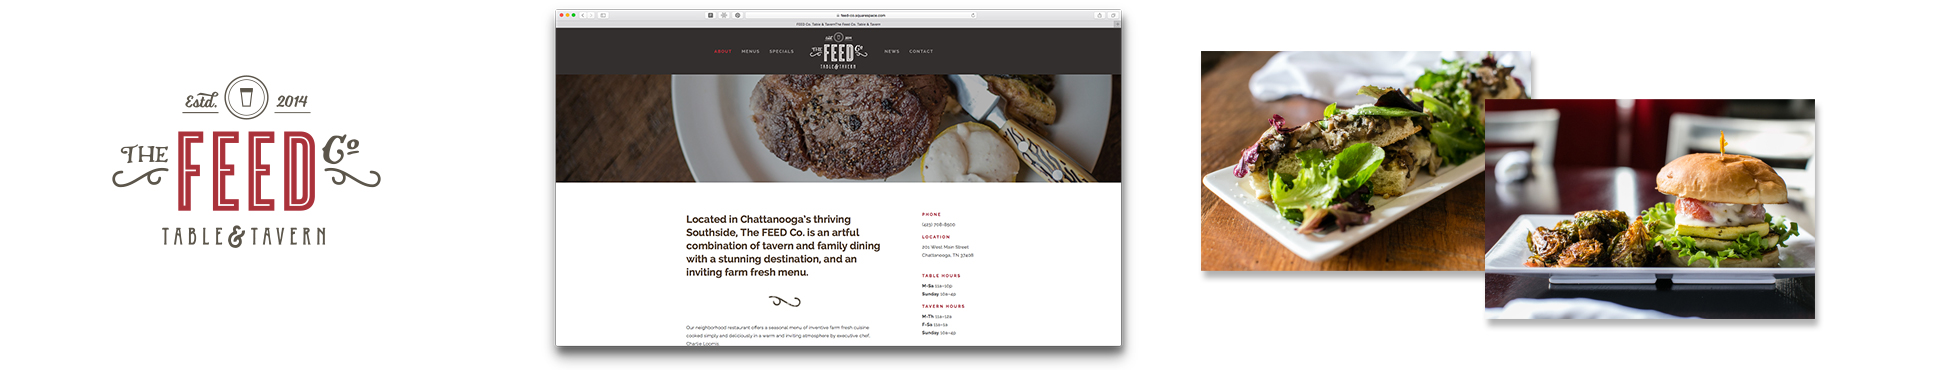 FEED Co. Table & Tavern   Photography Website Menu